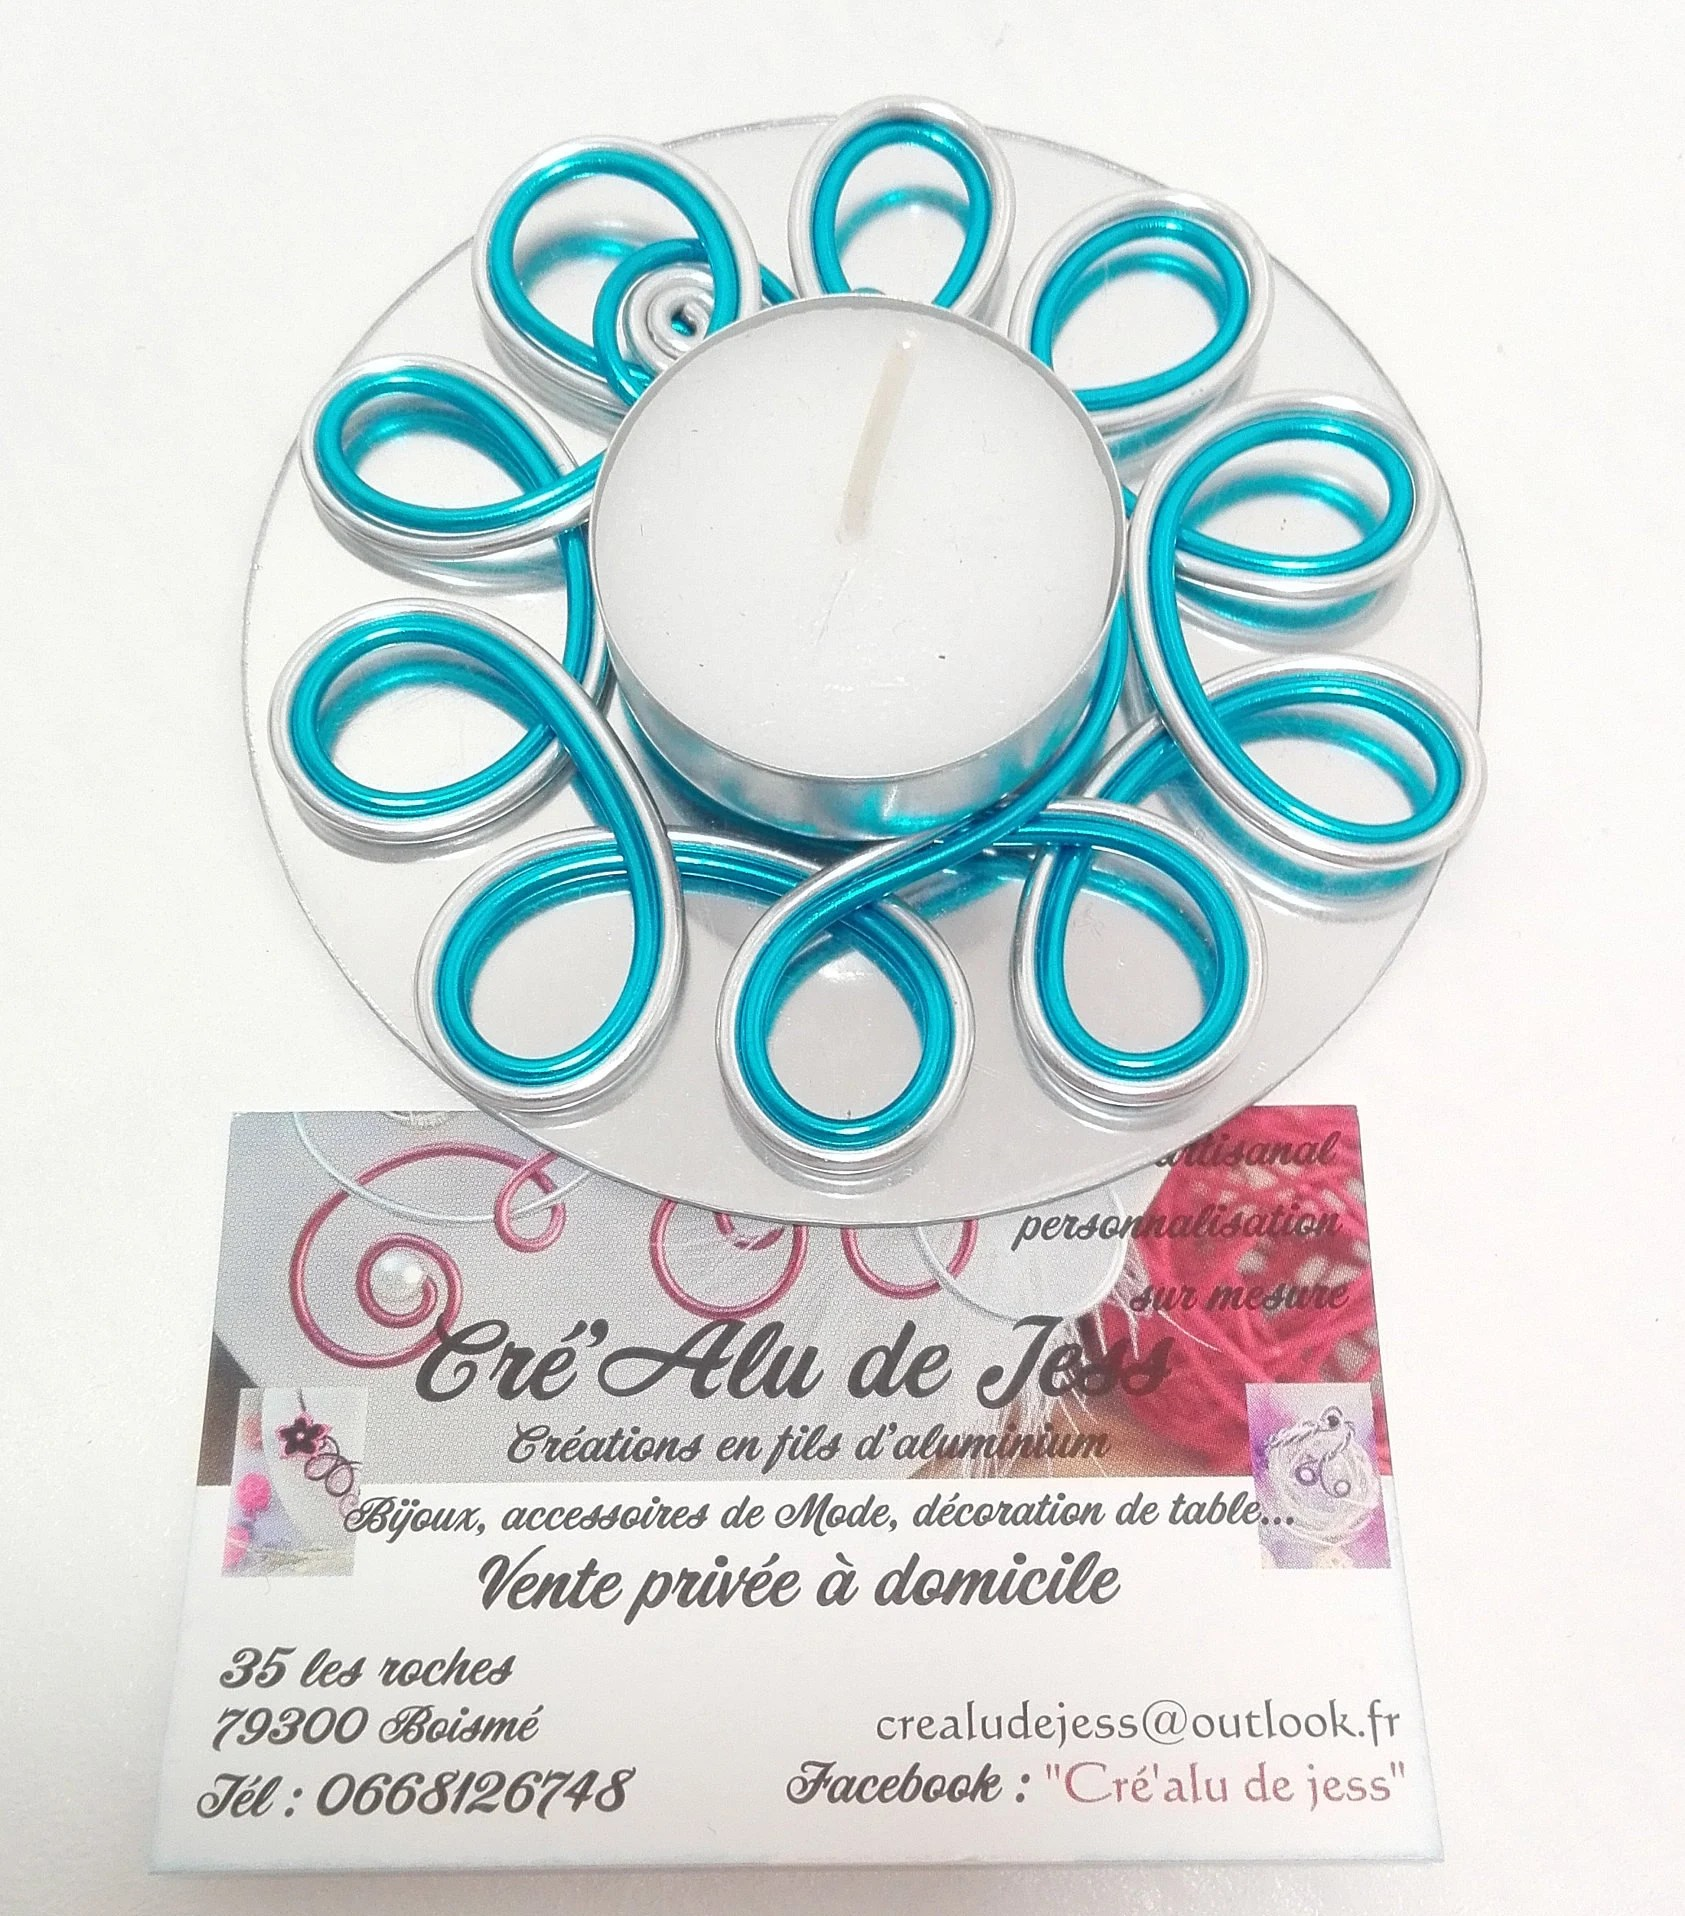 Décoration De Table Fil Aluminium Table Decoration Candle Holder Made Of Aluminum Wire Silver And Turquoise Blue